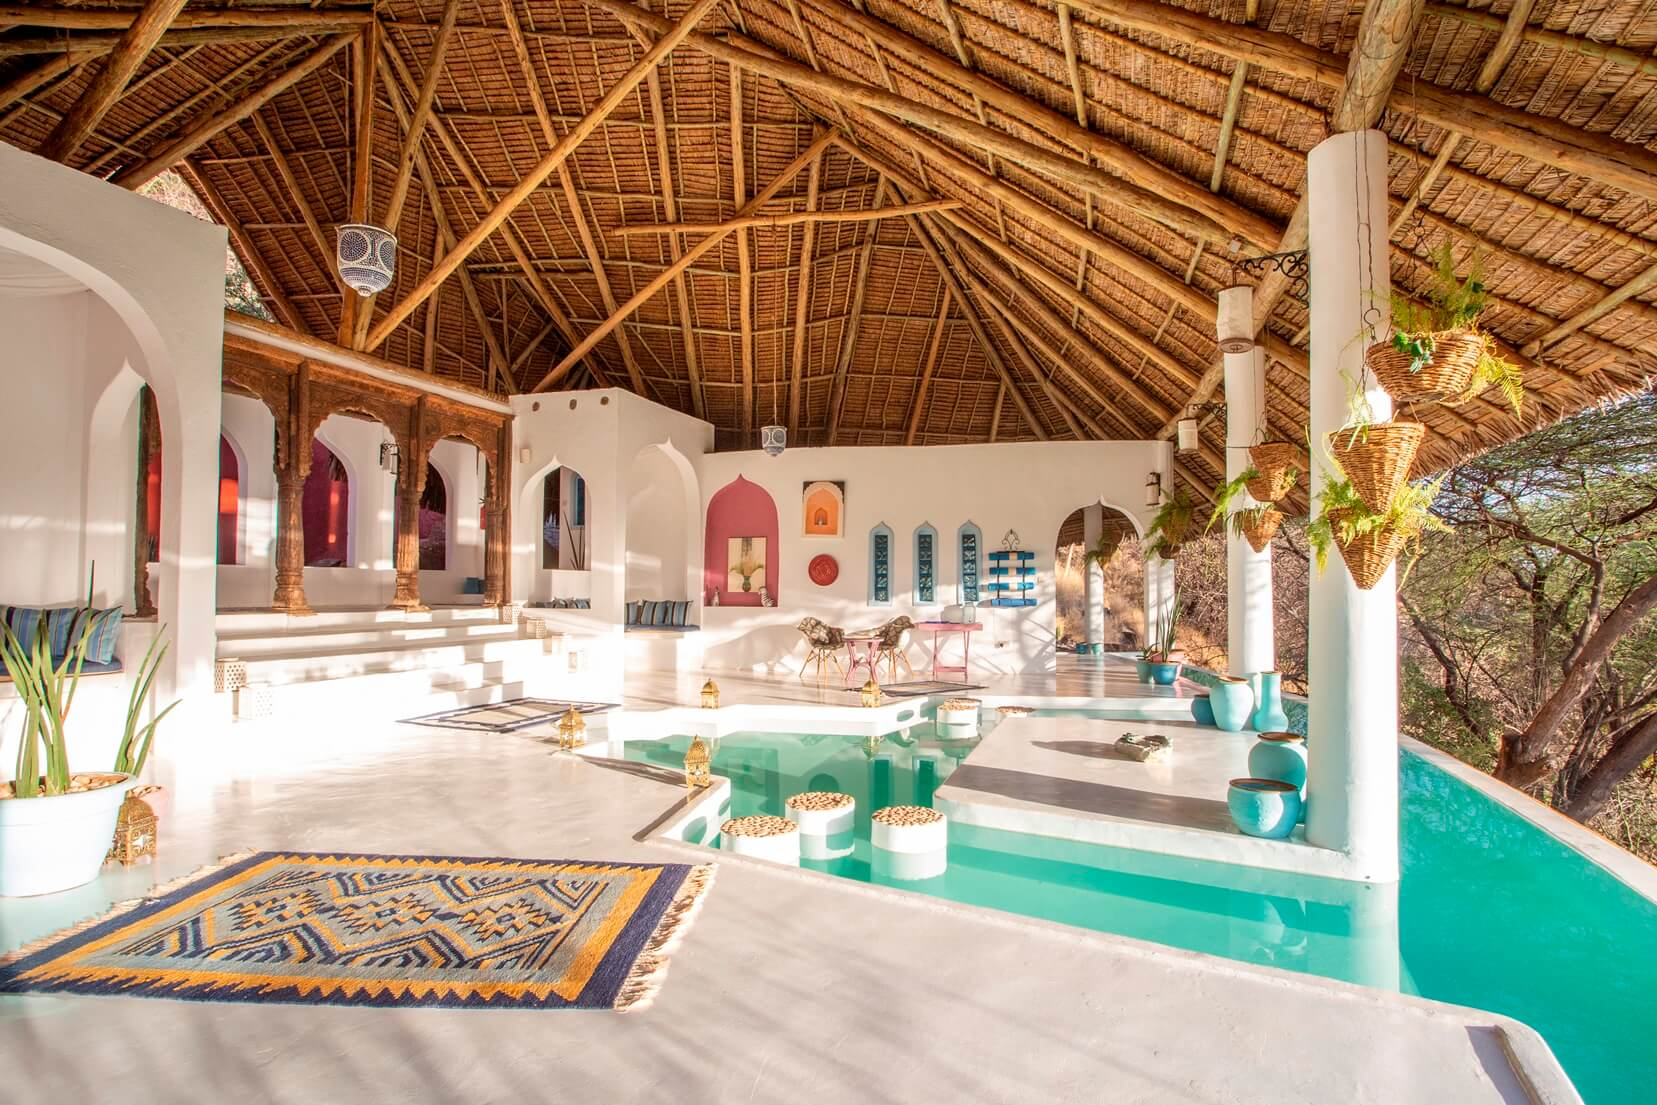 Moroccan style influence at Sasaab Lodge